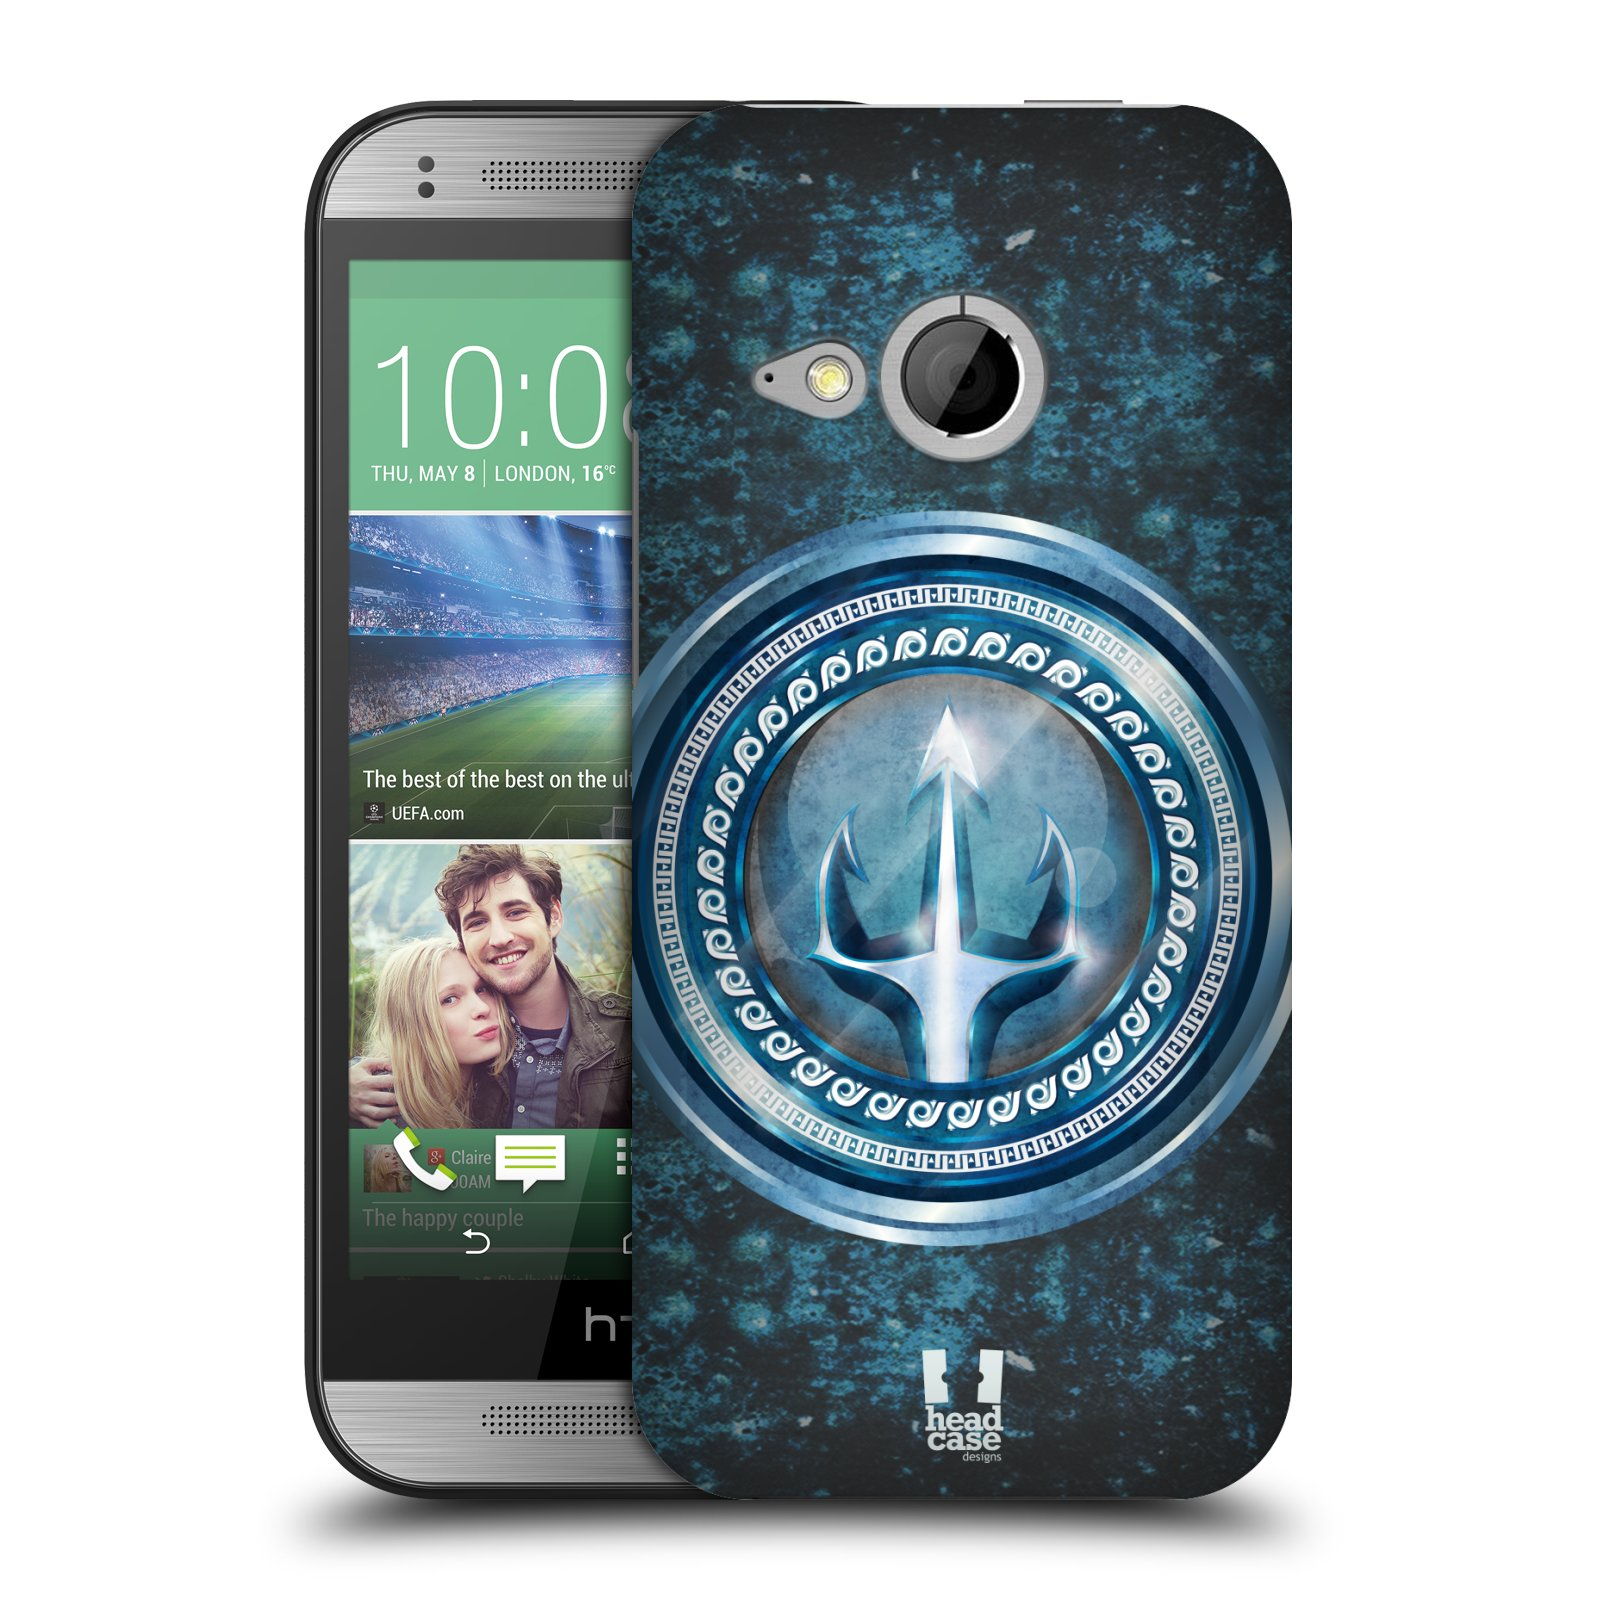 HEAD CASE DESIGNS PLATES OF OLYMPUS HARD BACK CASE FOR HTC ONE MINI 2